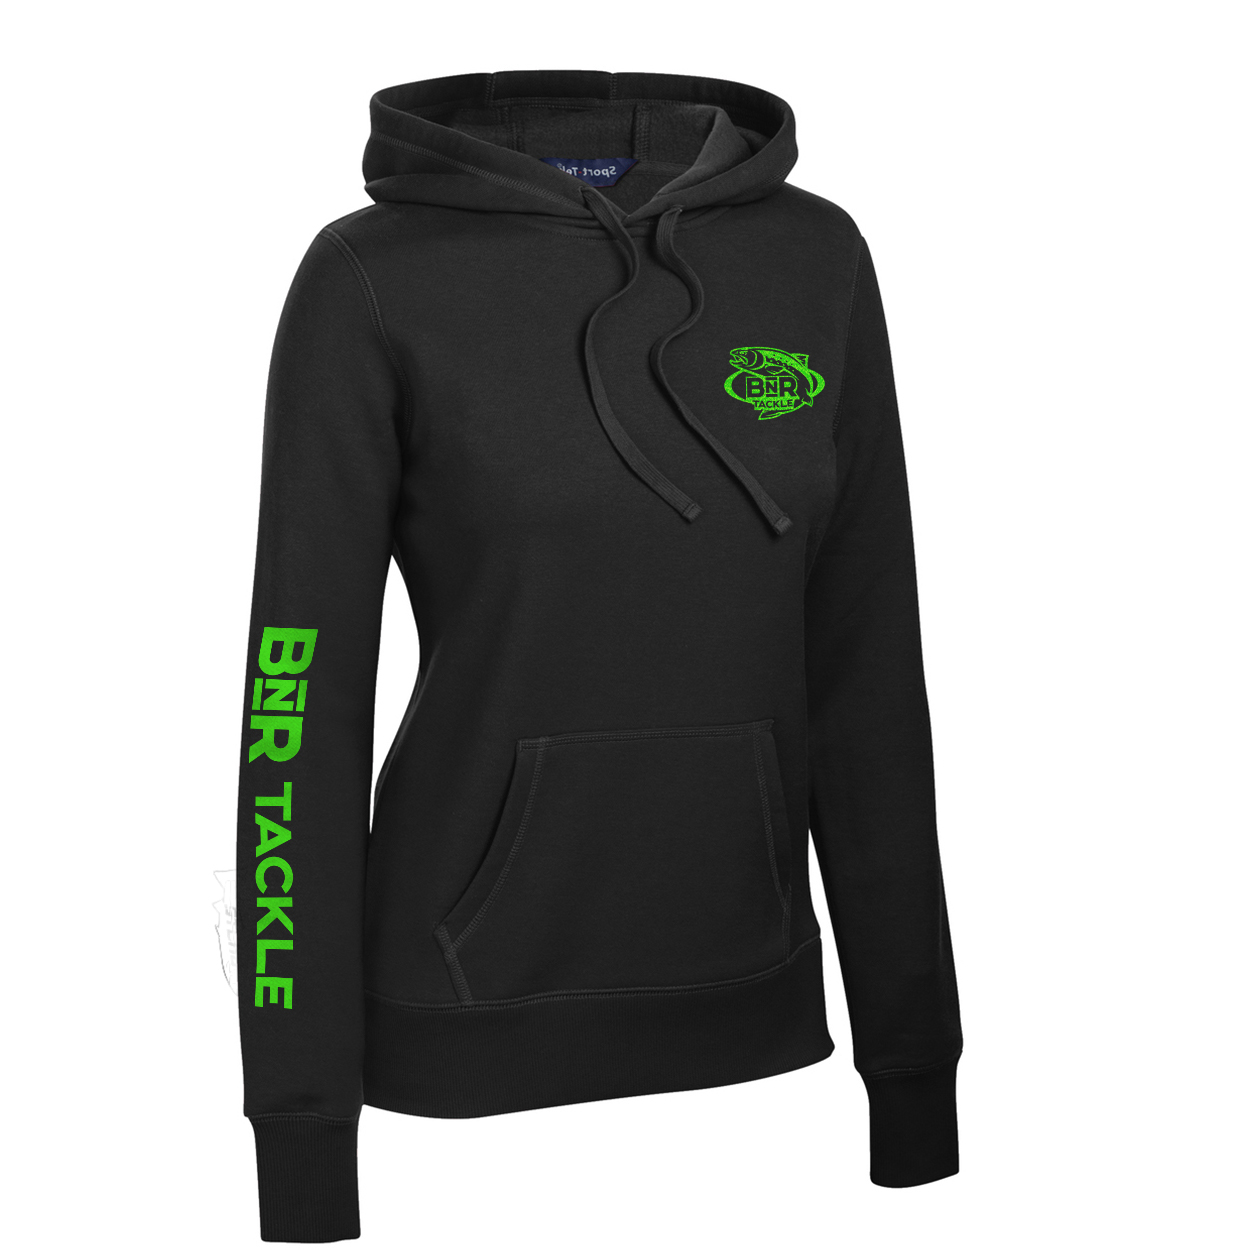 Ladies BnR Tackle Hoodie – Black/Neon Green